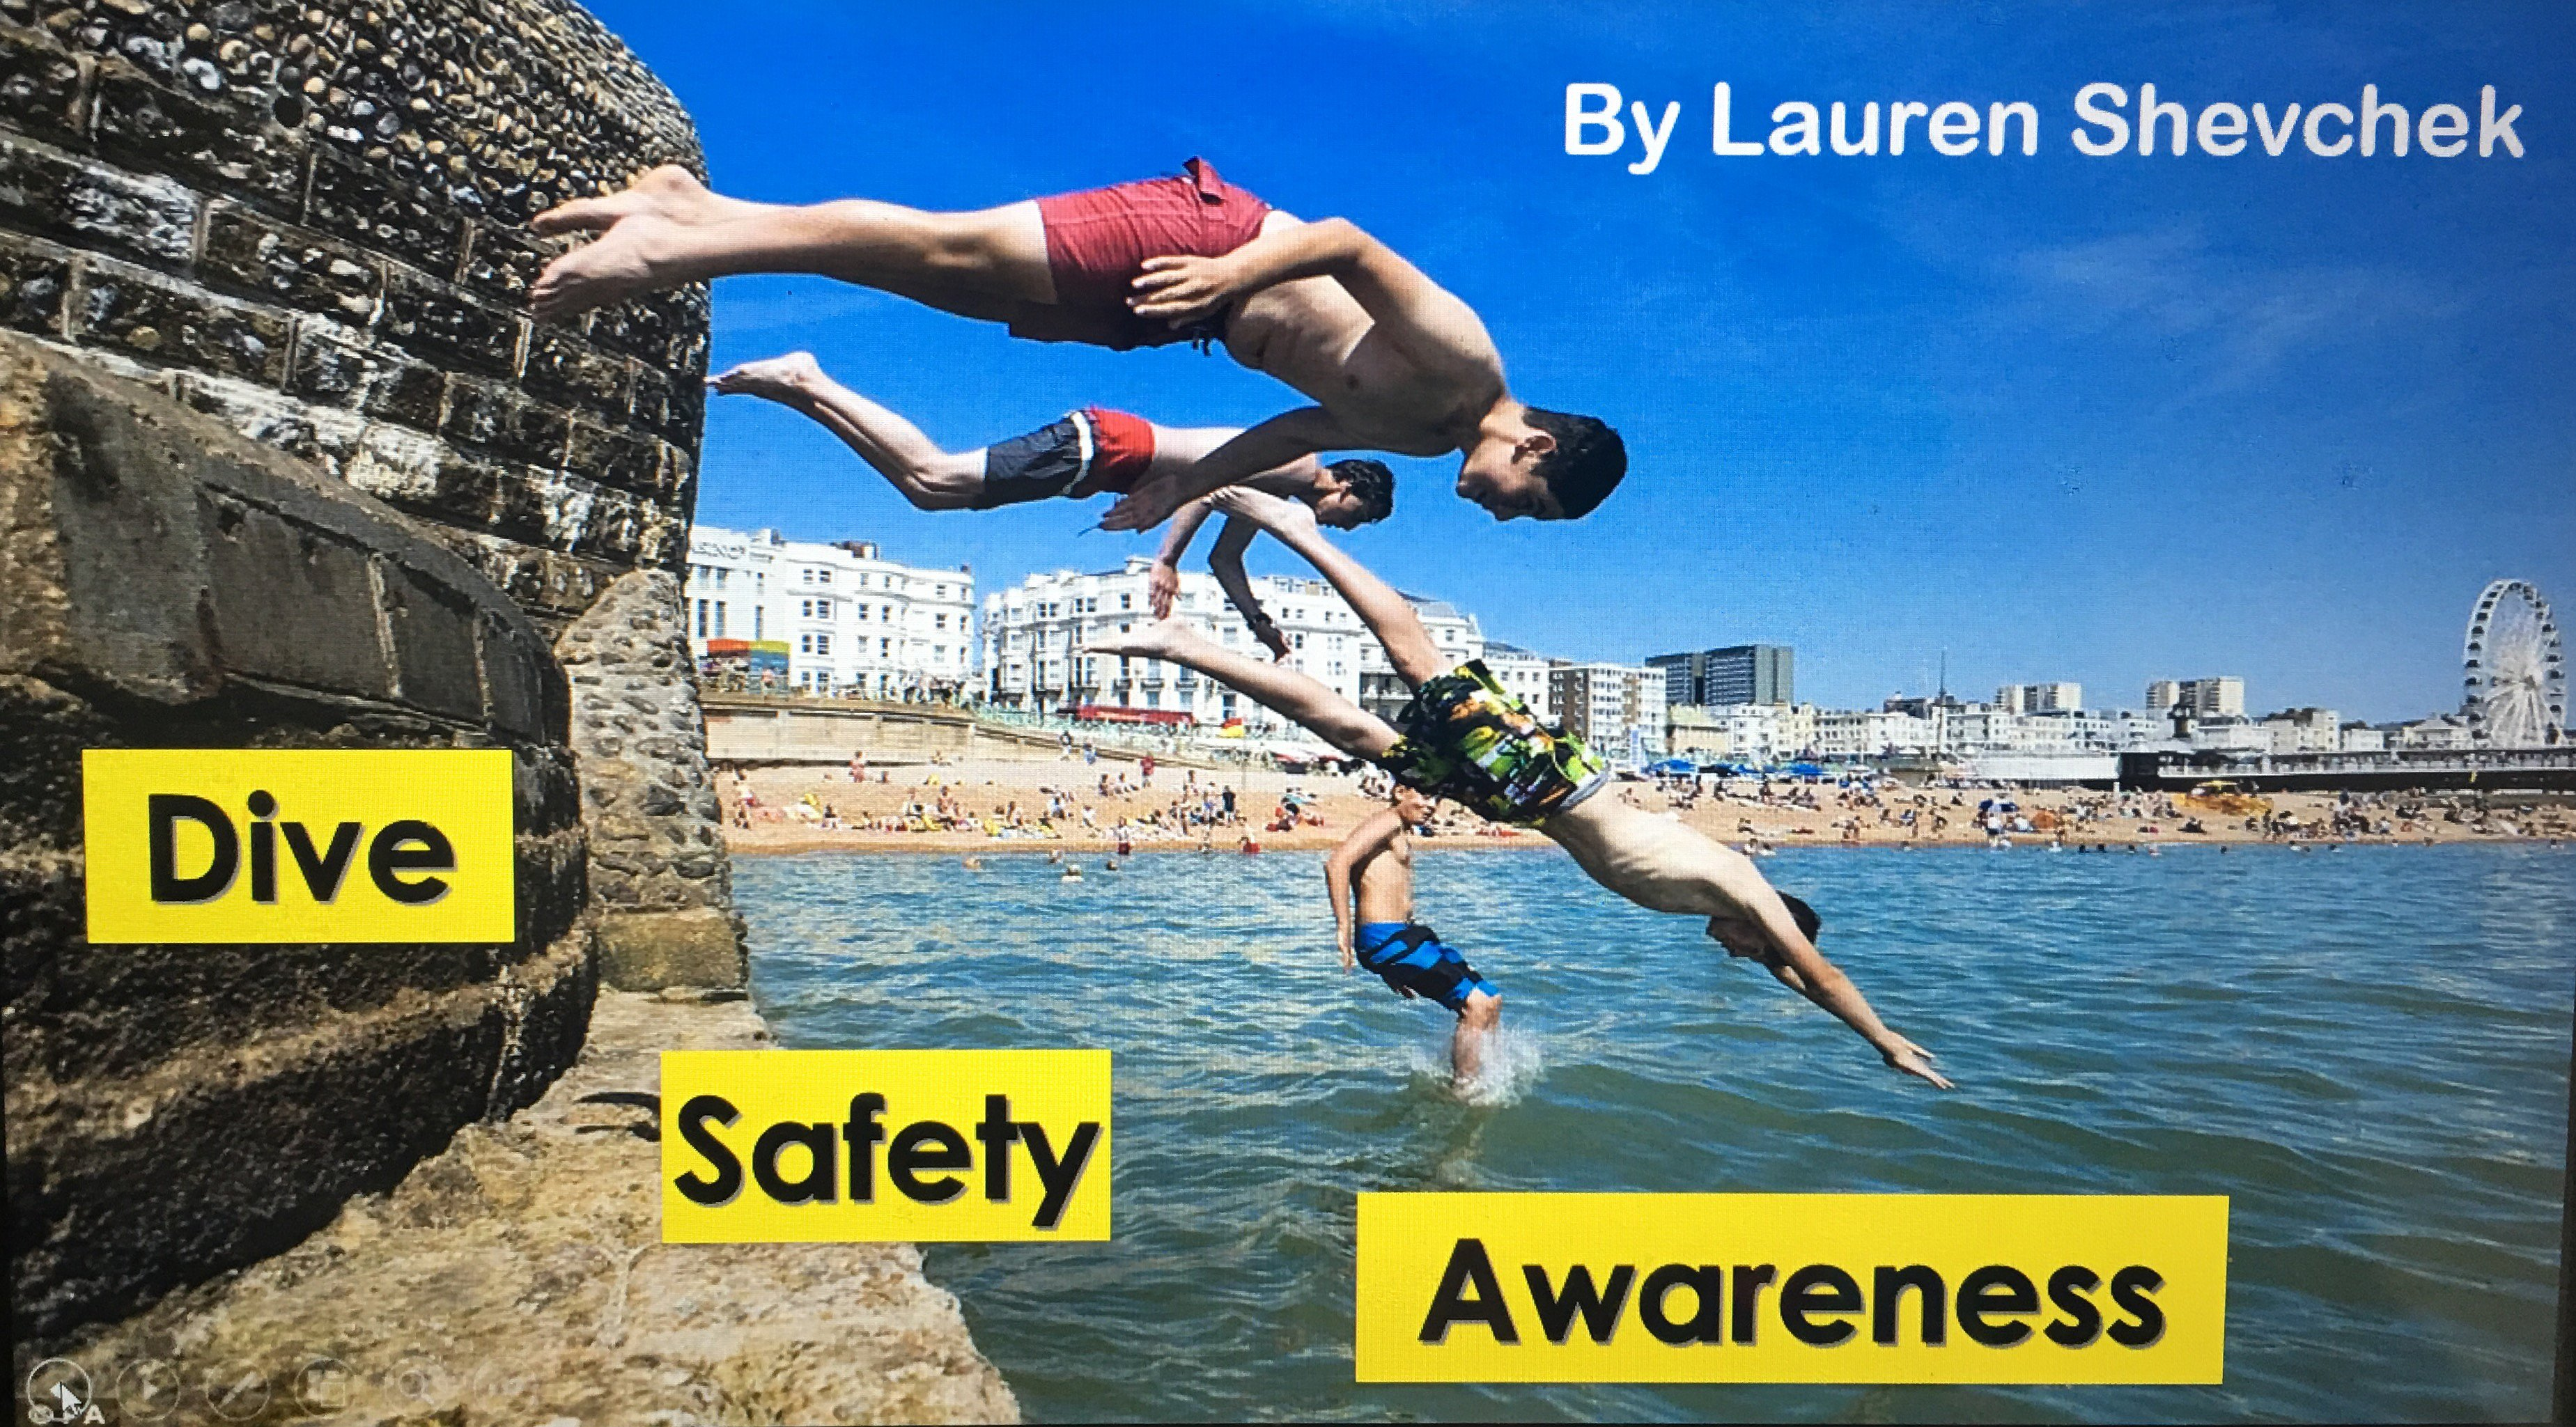 Dive Safety Campaign